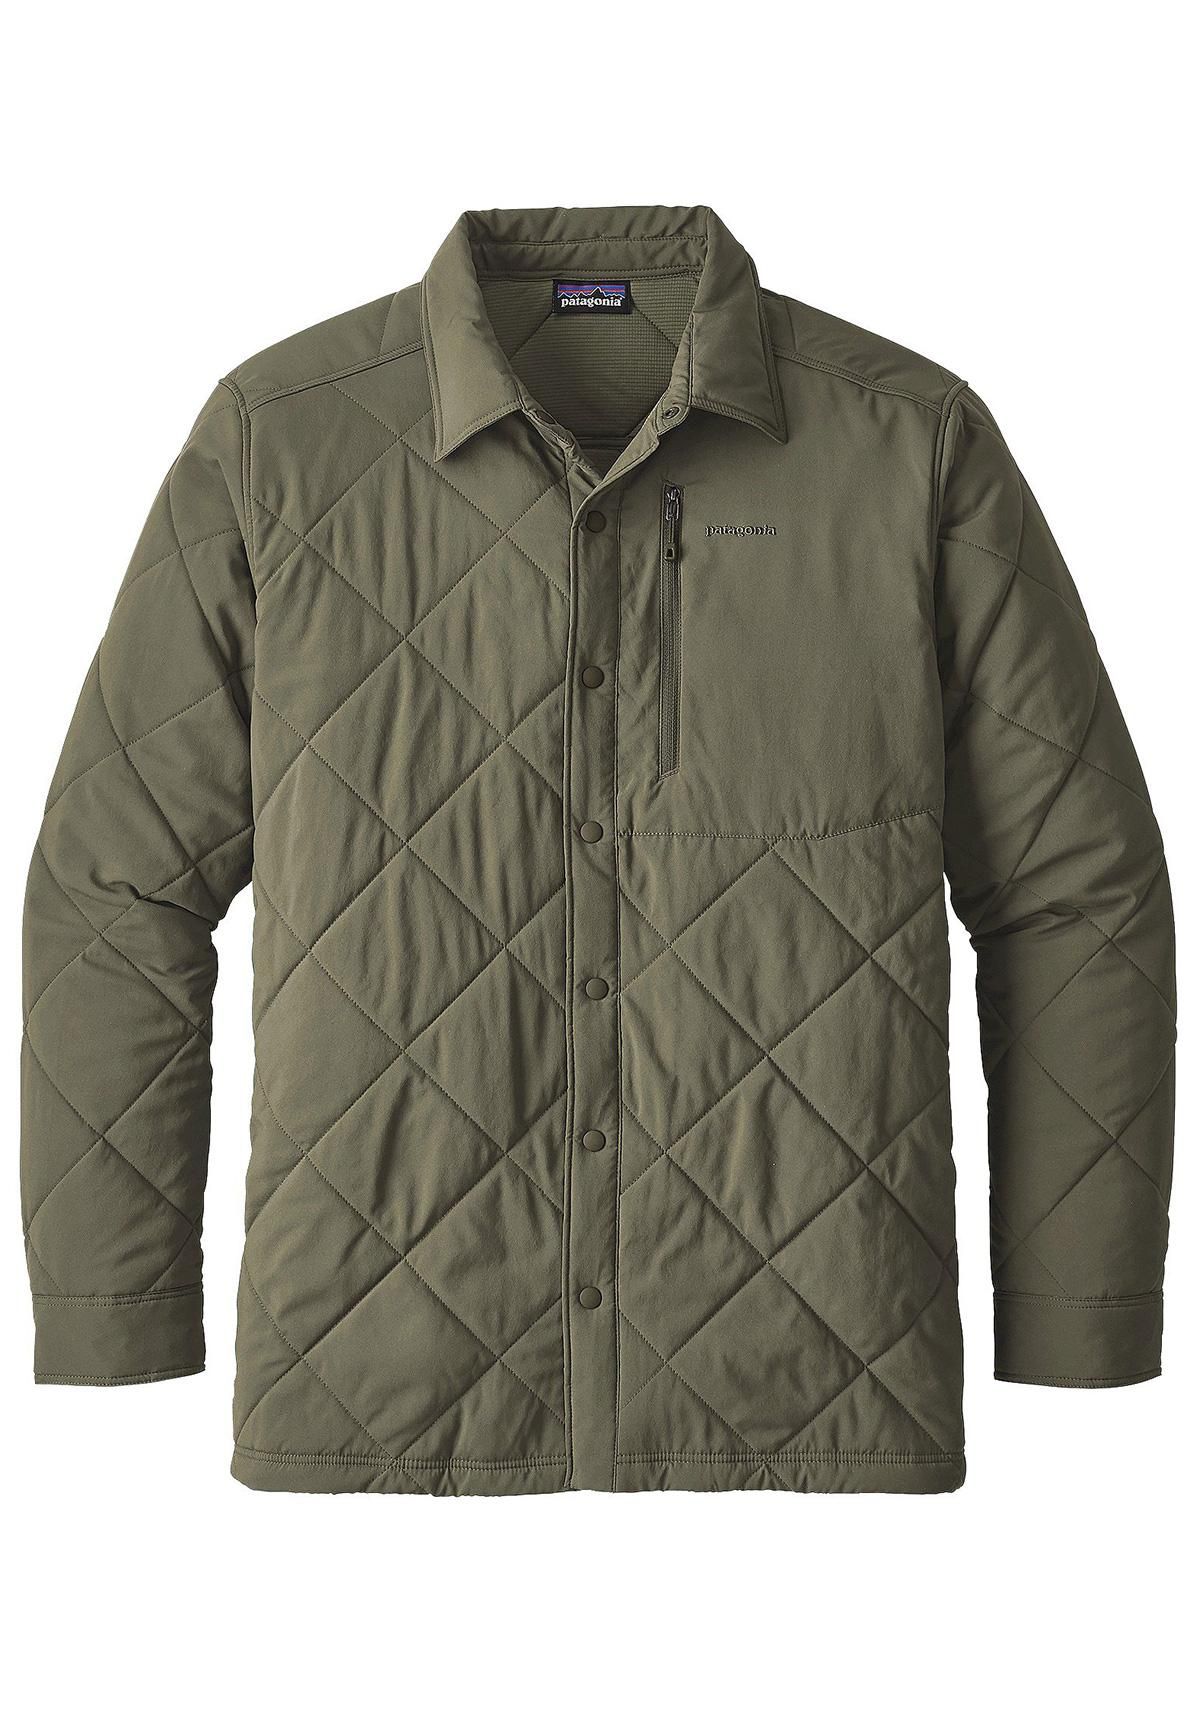 Jacke Patagonia Tough Puff Shirt